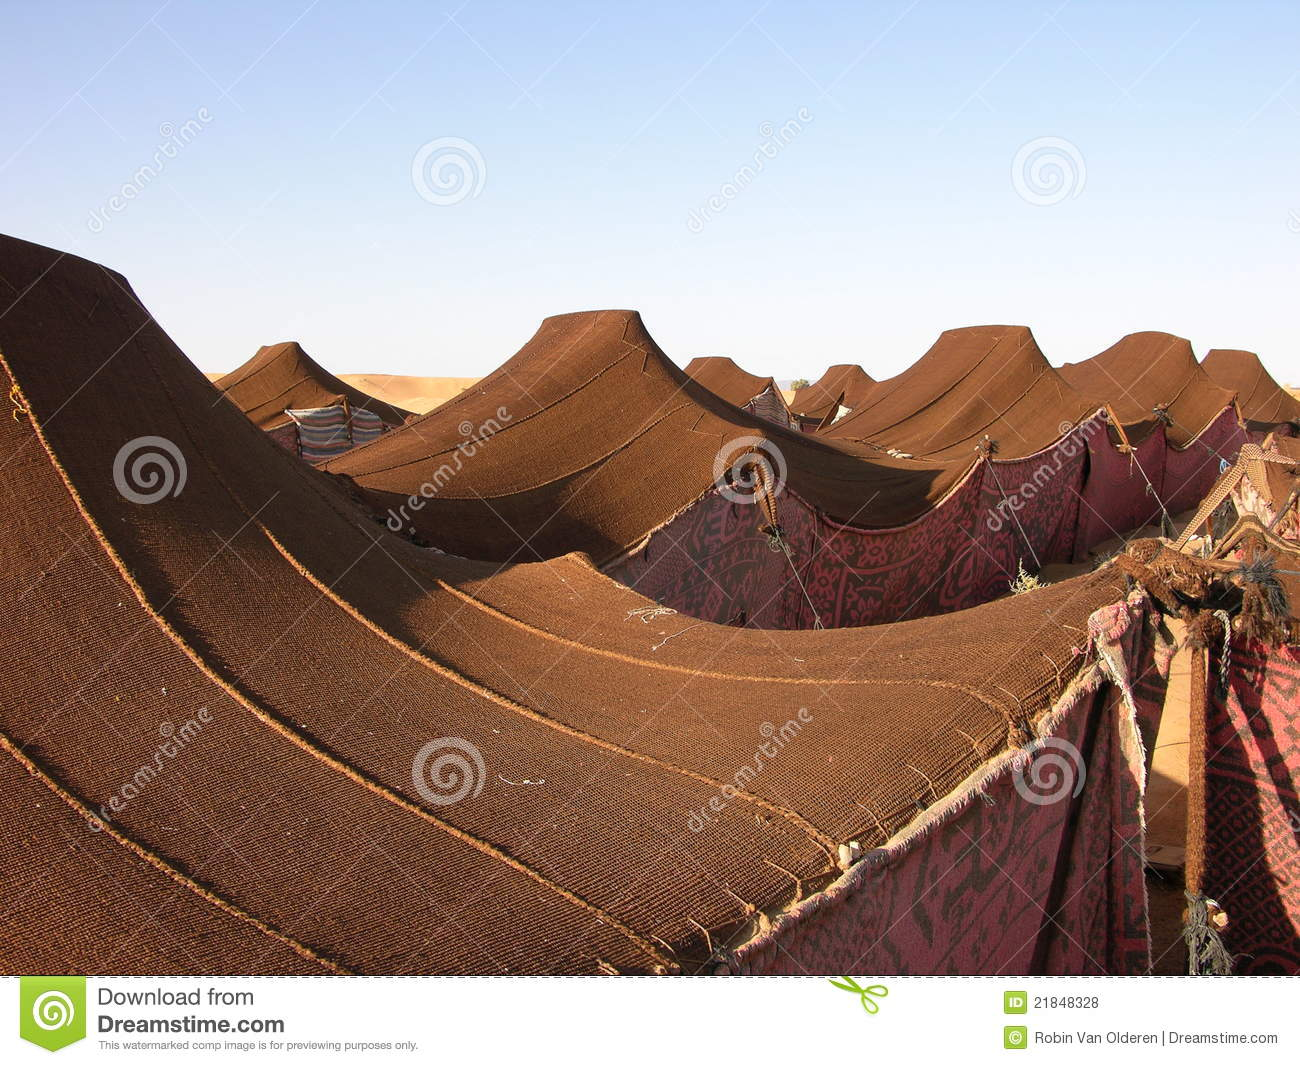 Bedouin c& in Morocco. Bedouin tent c& in Morocco Royalty Free Stock Photos & Bedouin Tent Stock Photos - Download 742 Images